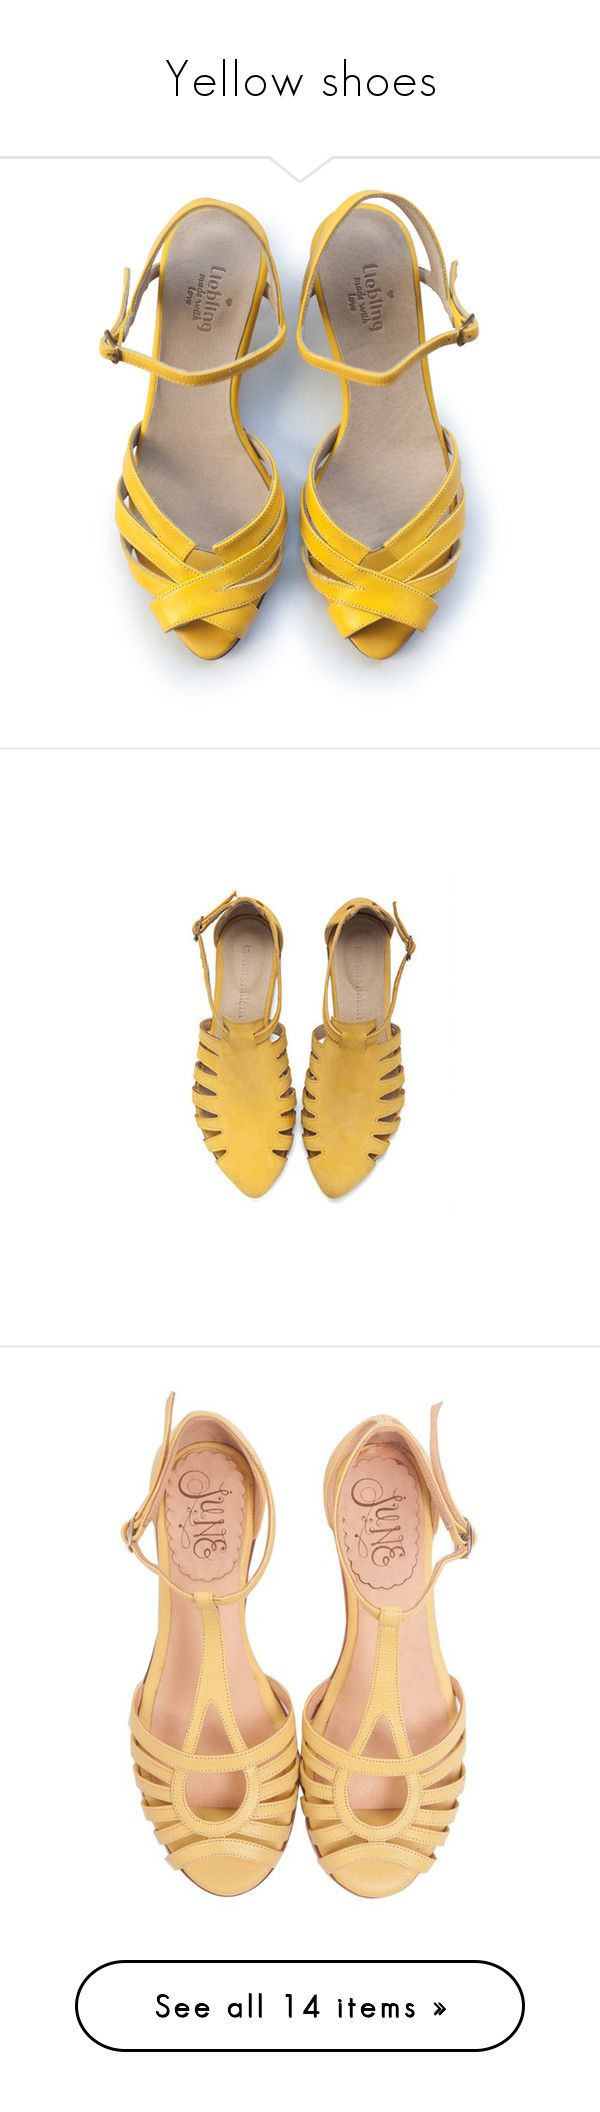 """Yellow shoes"" by rastaress-motso ❤ liked on Polyvore featuring shoes, sandals, wide shoes, leather heeled sandals, mid heel sandals, wide width sandals, mid-heel shoes, flats, yellow and silver"